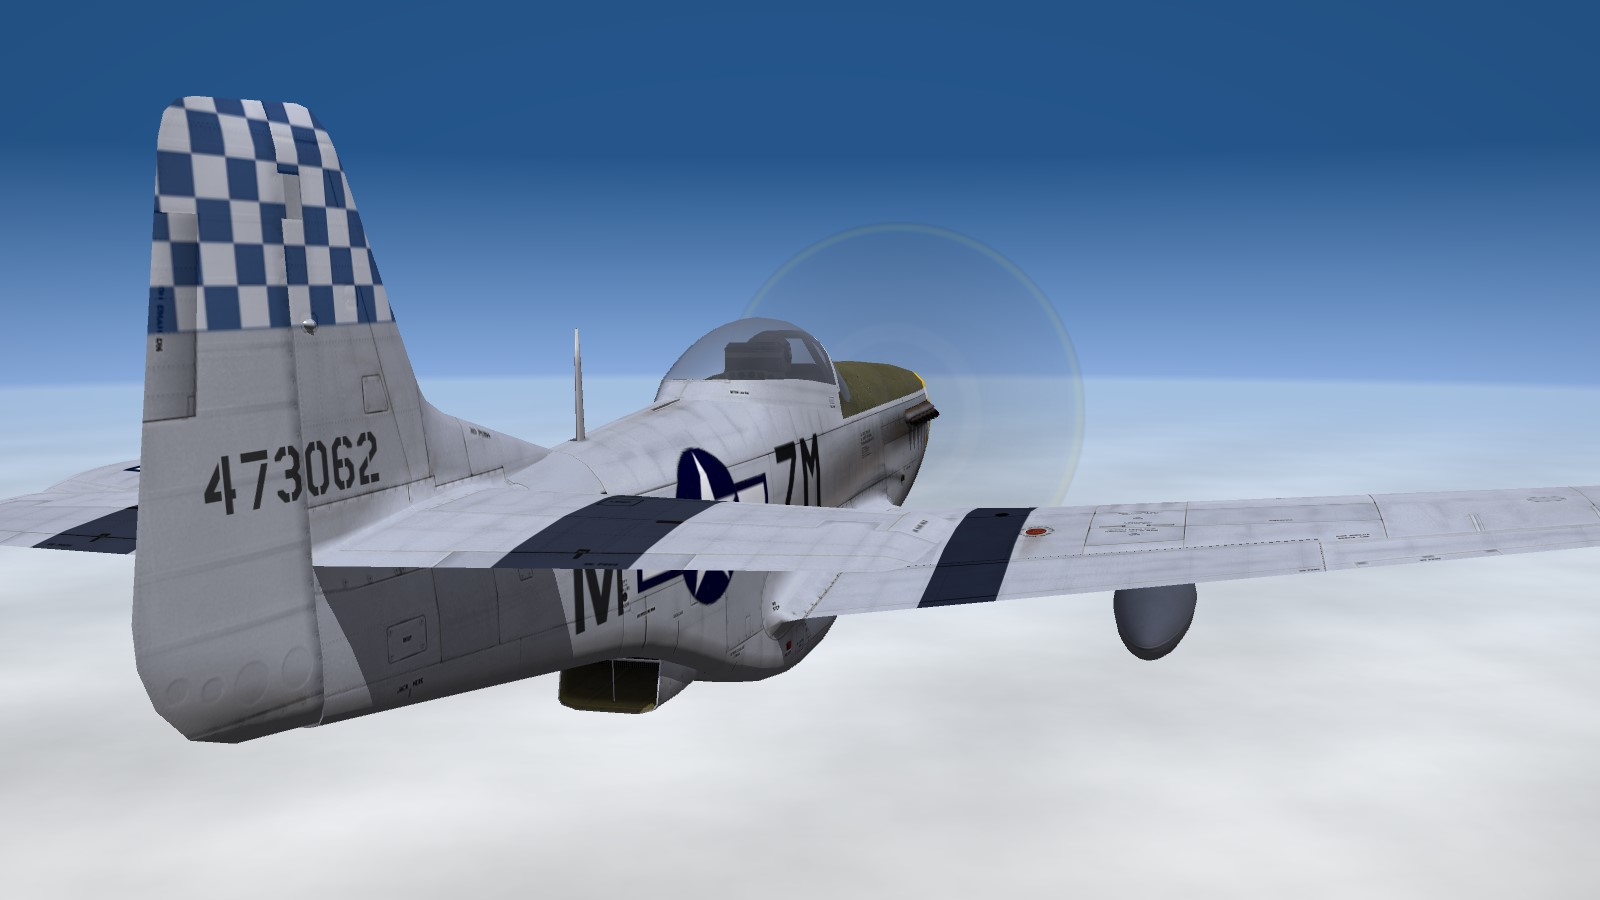 F-6A Mustang photorecon